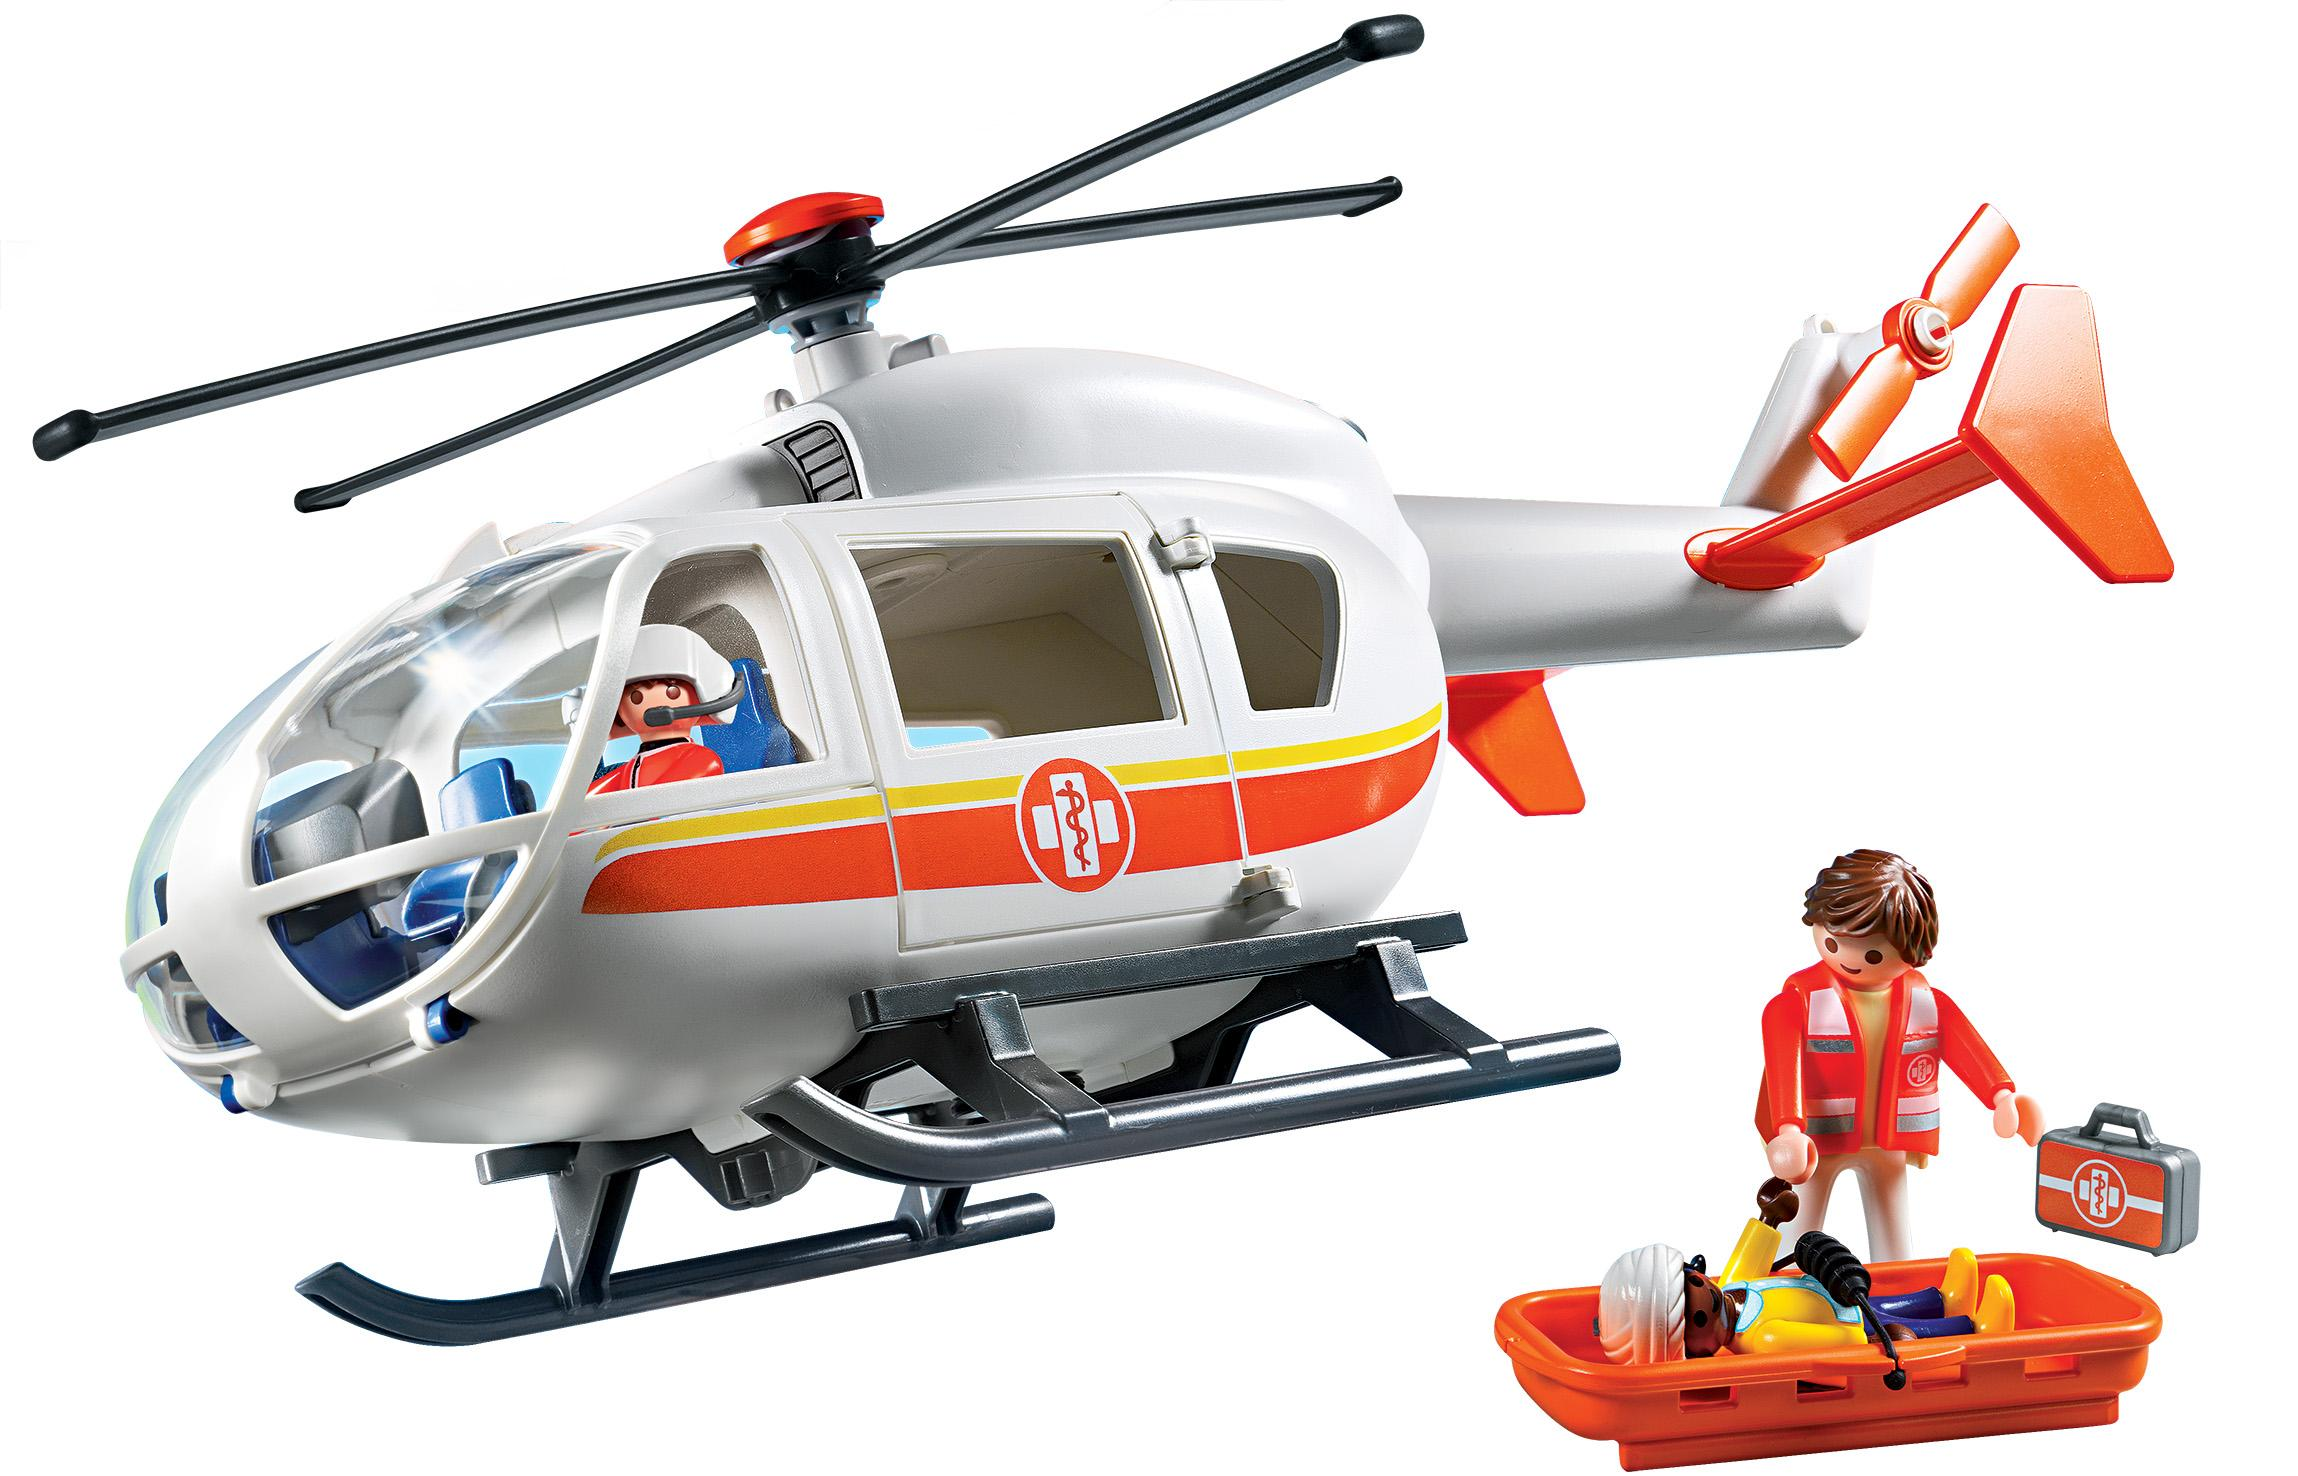 rescue helicopter toy with B00vlv4zee on Ten African Migrants Caught Sailing Strait Gibraltar Plastic Childrens Toy Dingy likewise Adrian Marc A Passion For Sci Fi moreover B00VLV4ZEE in addition Air Ambulance Transparent Background additionally 12 Christmas Gifts Writers.